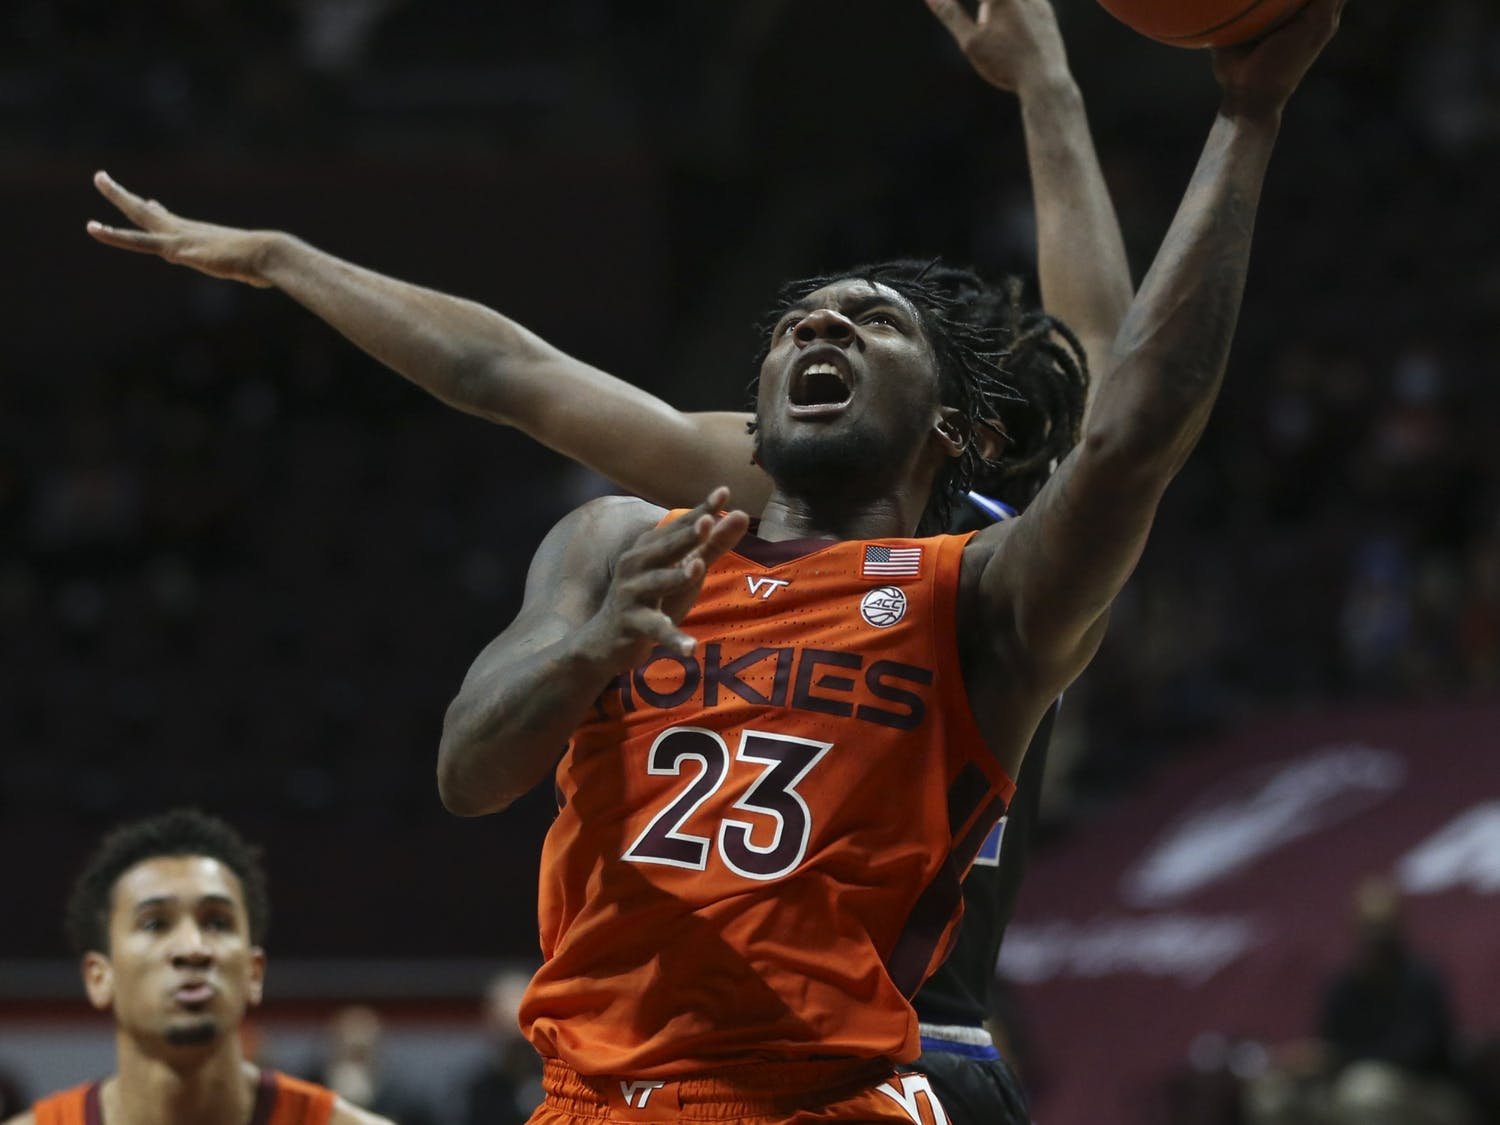 Redshirt sophomore guard Tyrece Radford paced the Hokies offensively.